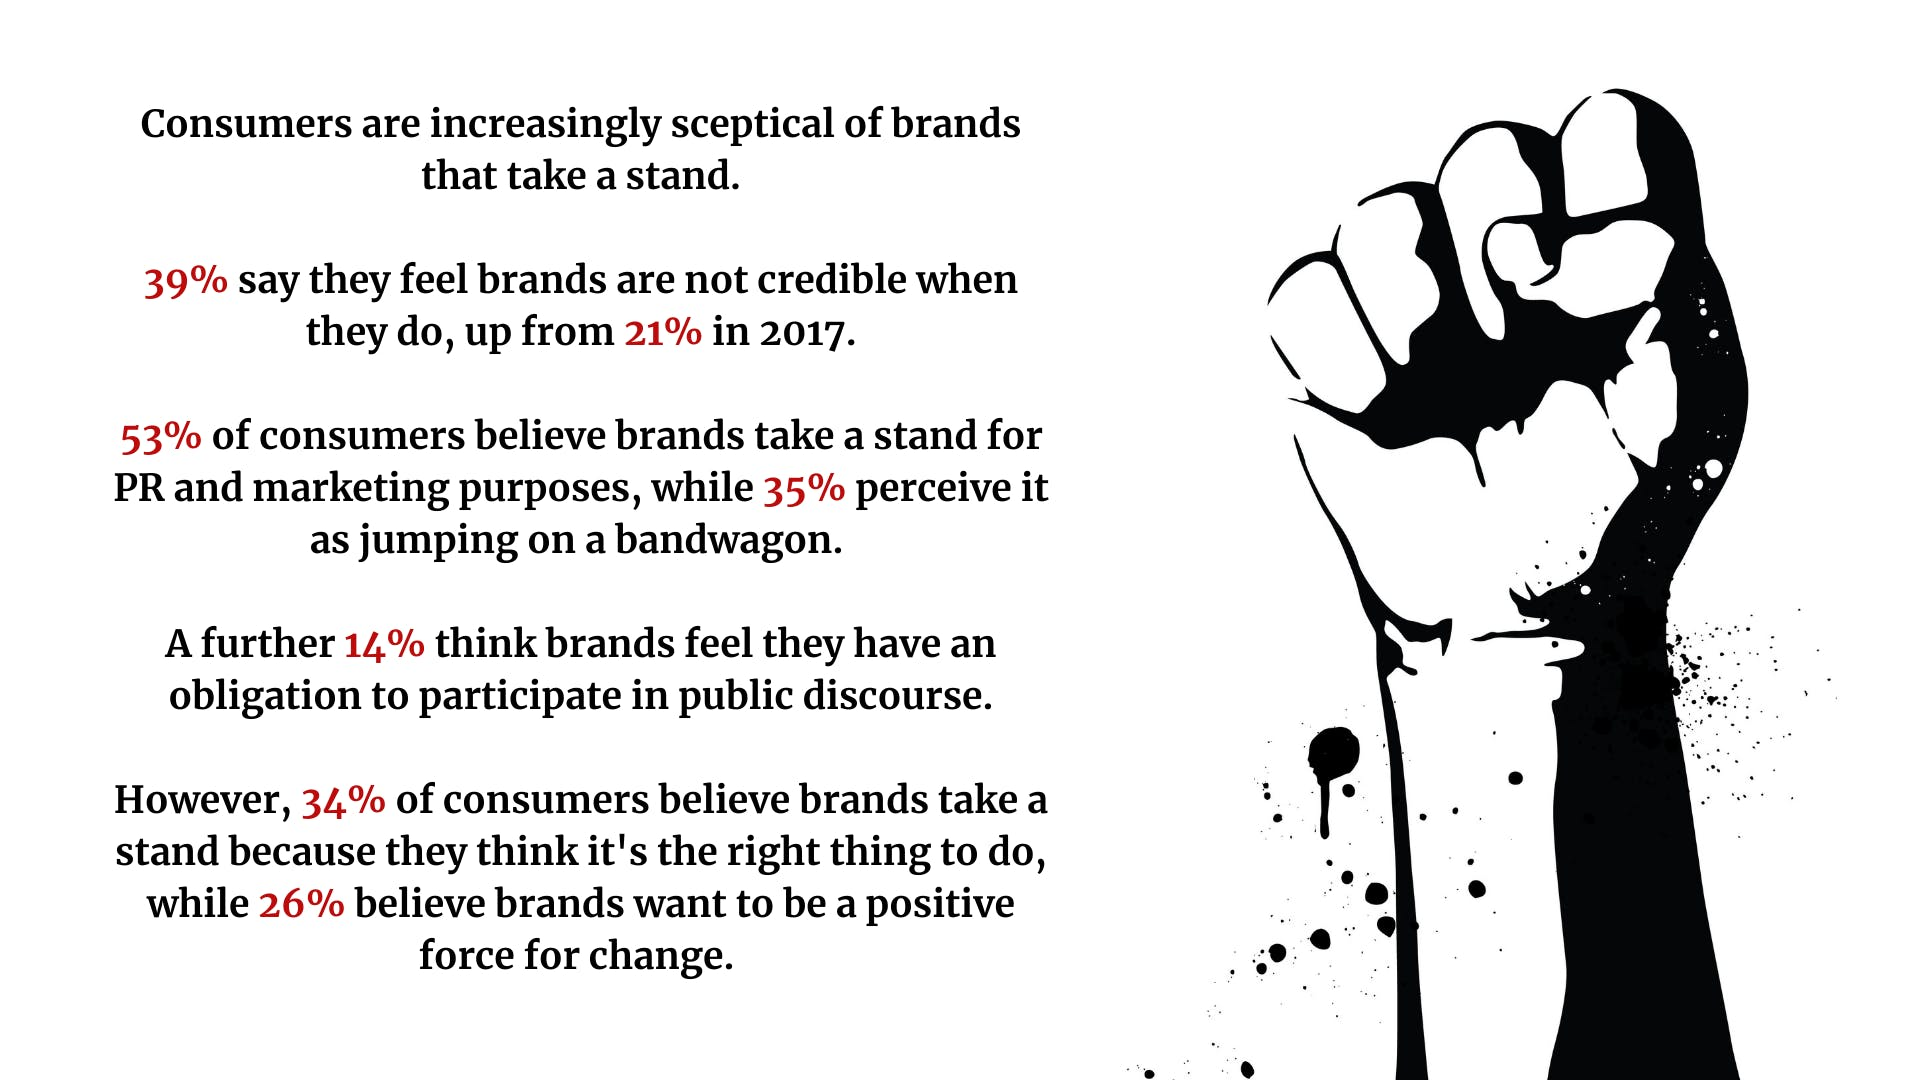 Ad placements, high street footfall, business confidence: 5 killer stats to start your week